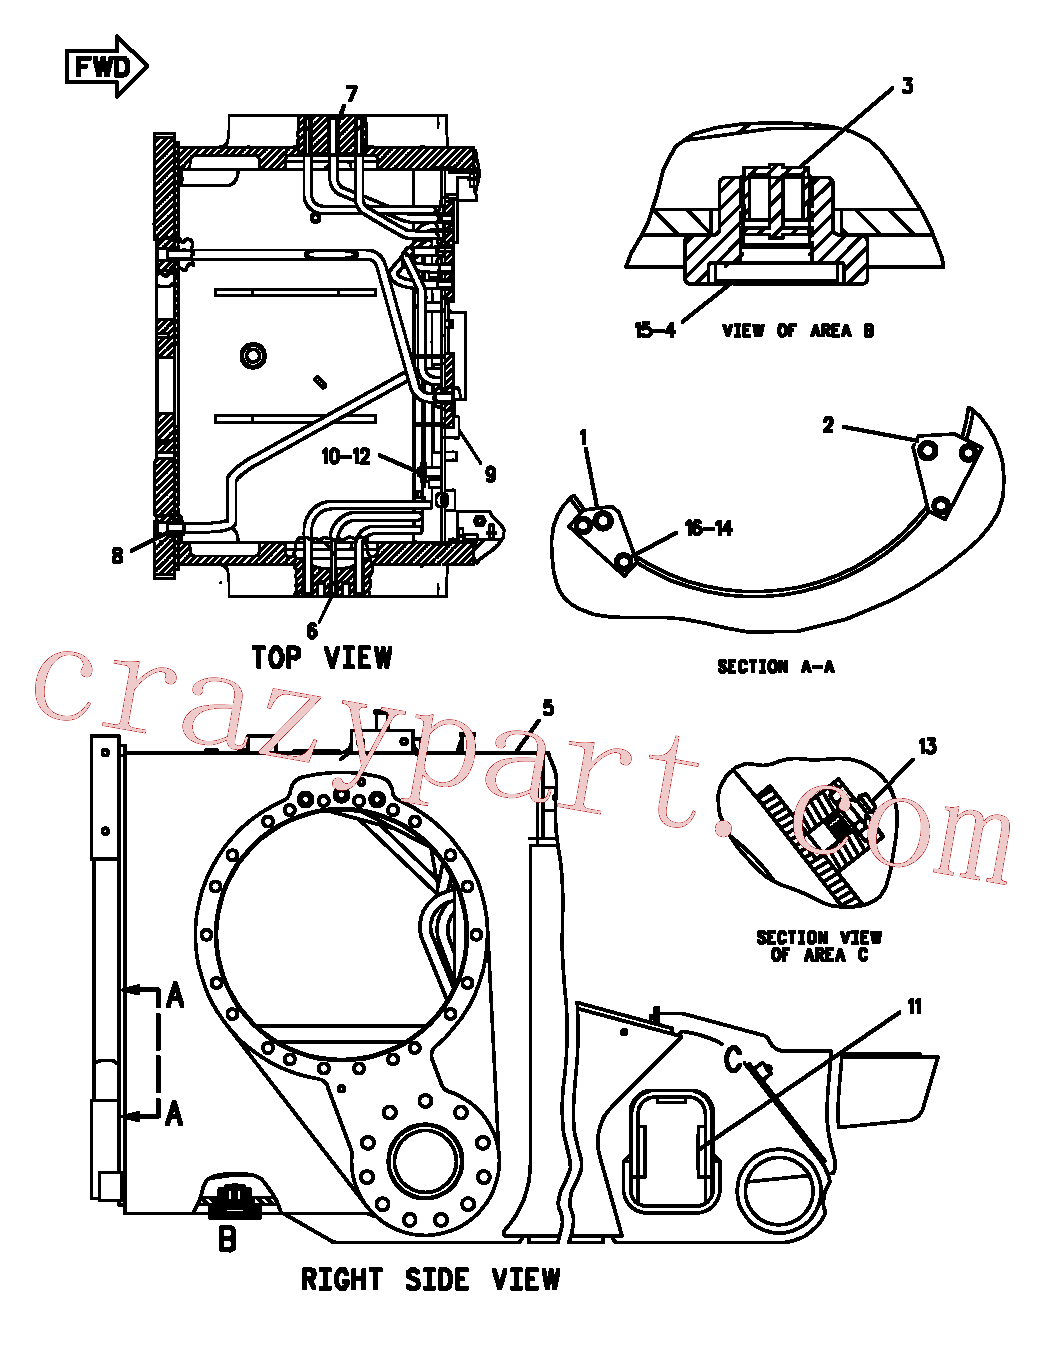 CAT 6F-0711 for D4H Track Type Tractor(TTT) frame and body 107-7250 Assembly